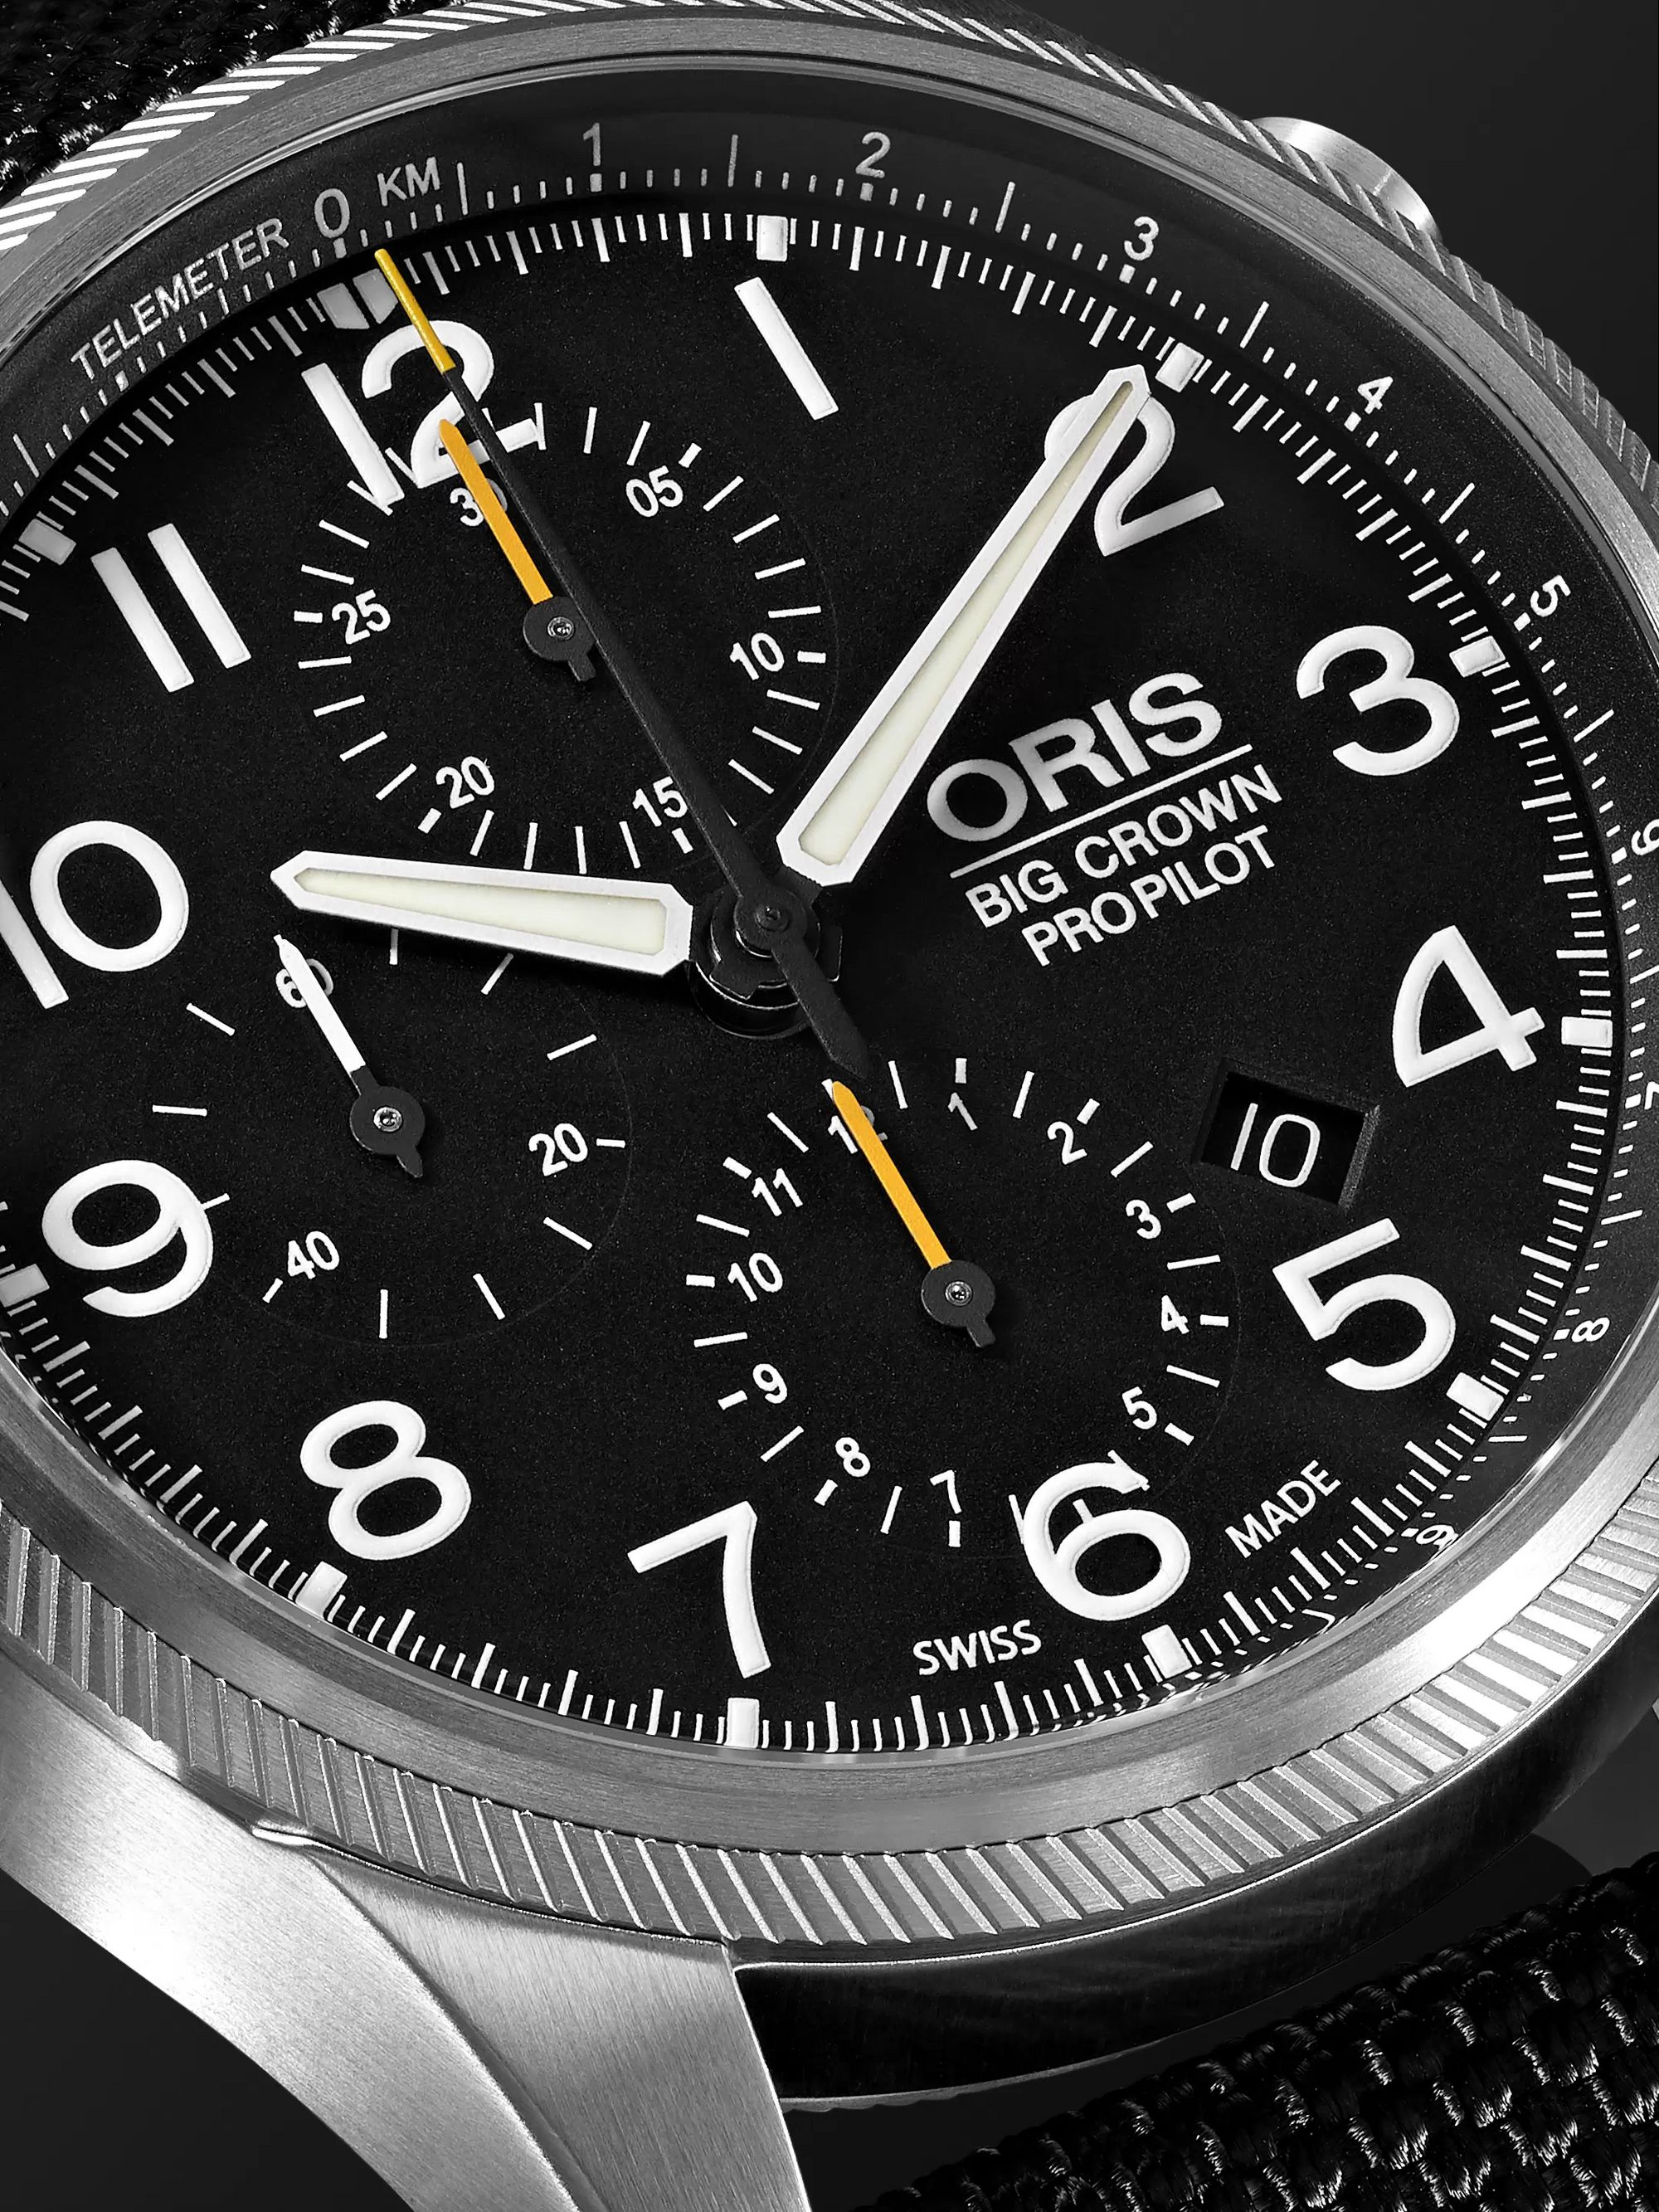 Oris Big Crown ProPilot Chronograph 44mm Stainless Steel and Nylon Watch, Ref. No. 01 774 7699 4134TS